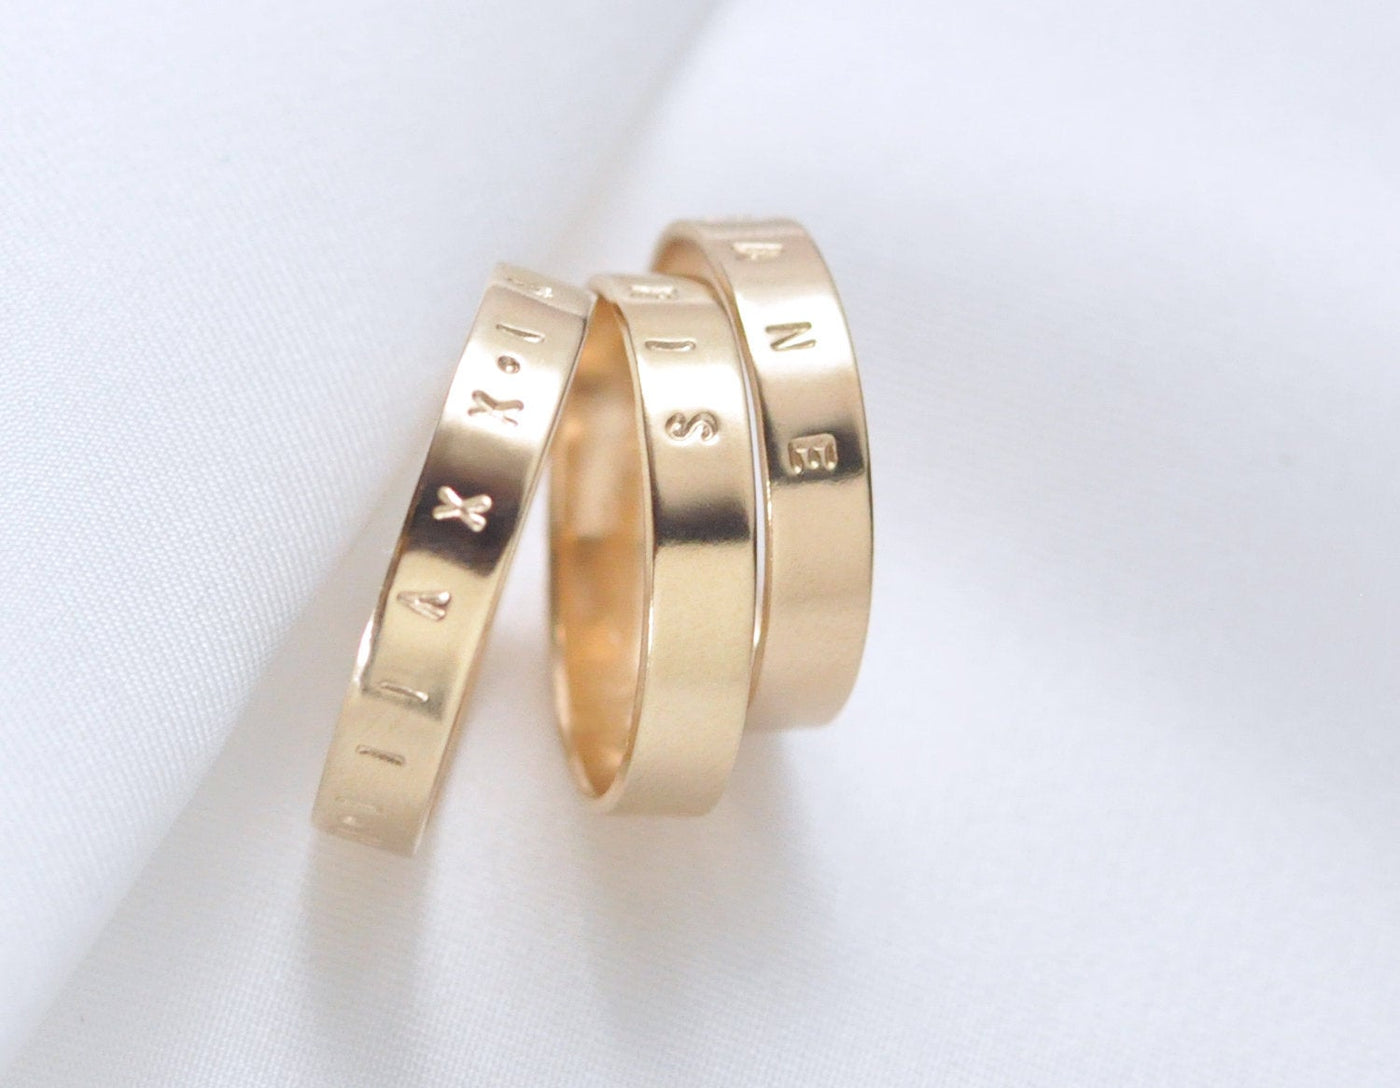 engraved 14 karat gold wedding ring, customized 14 kt gold wedding band, karat1424